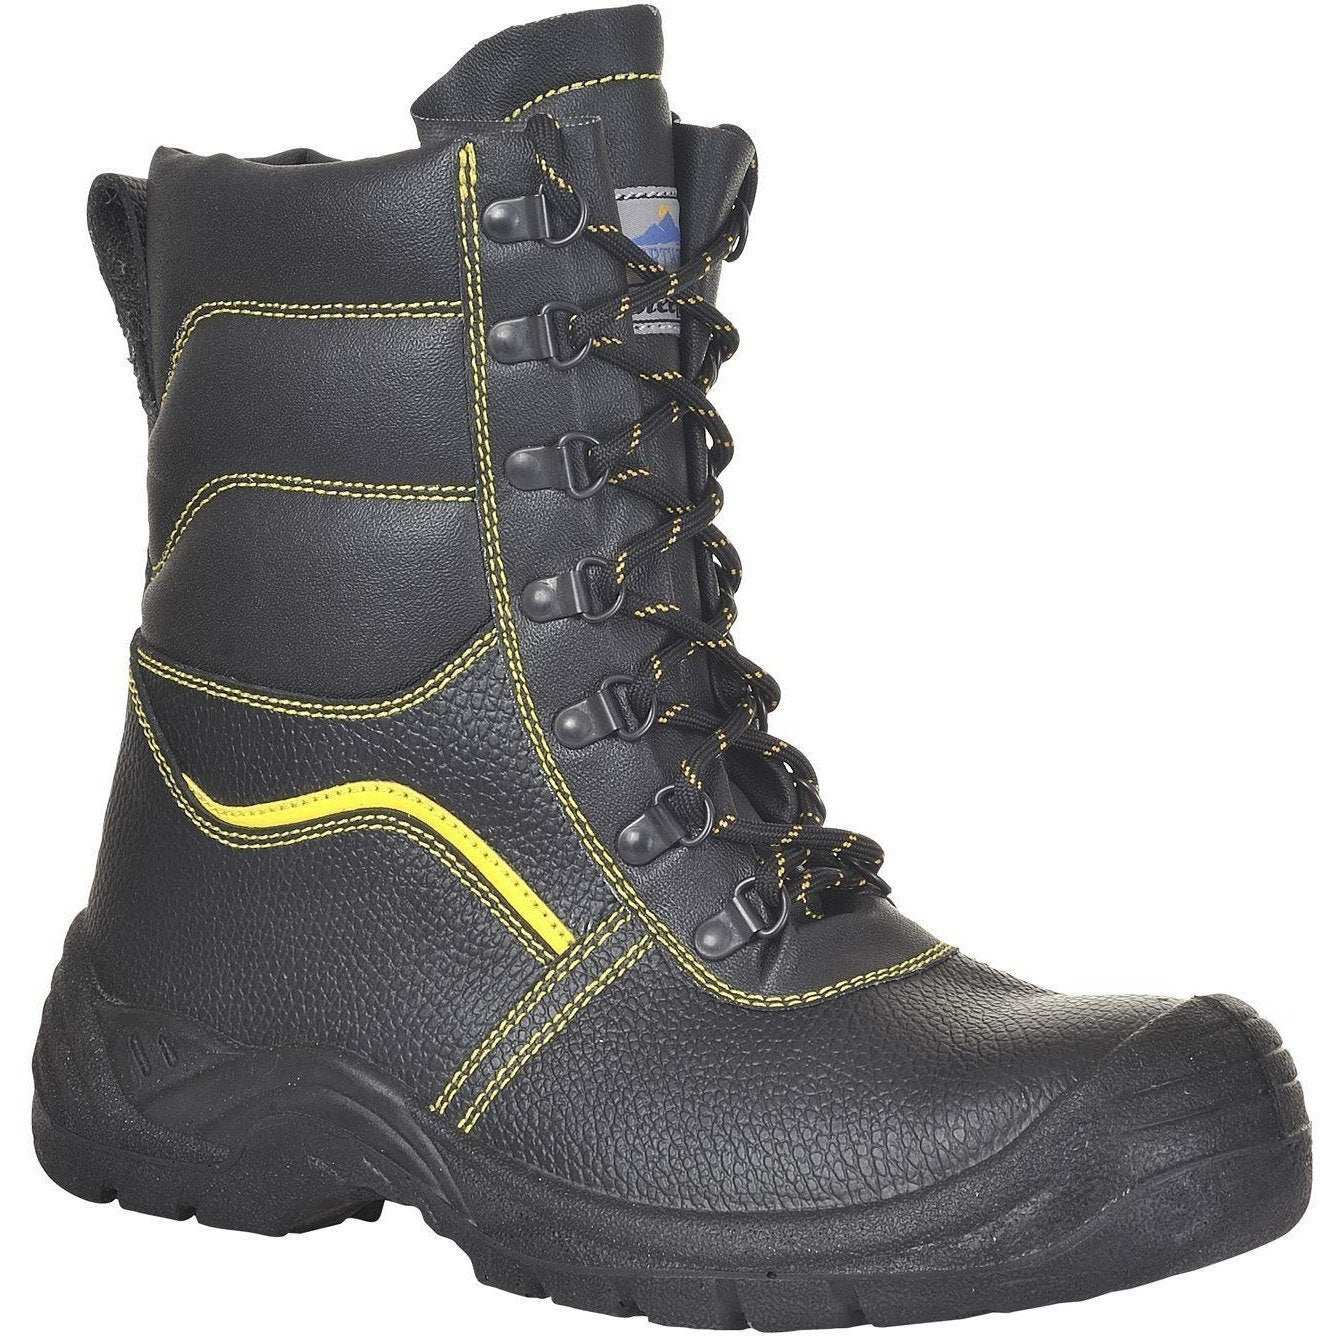 Portwest Steelite Fur Lined Protector Boot S3 CI FW05 - reid outdoors